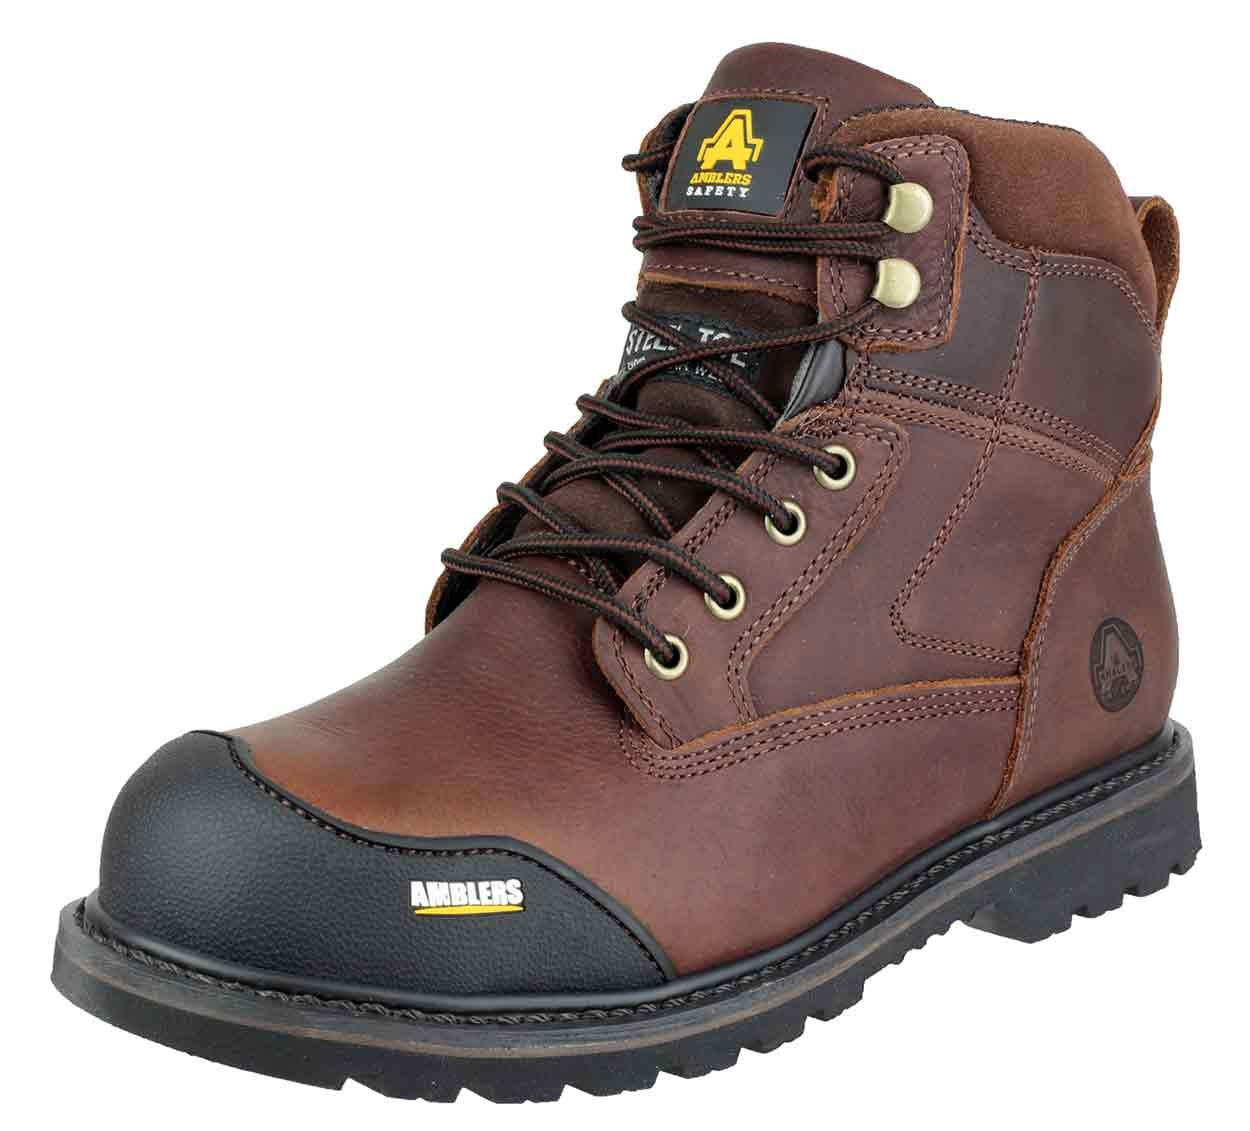 Full Grain Goodyear Welted Safety Boot